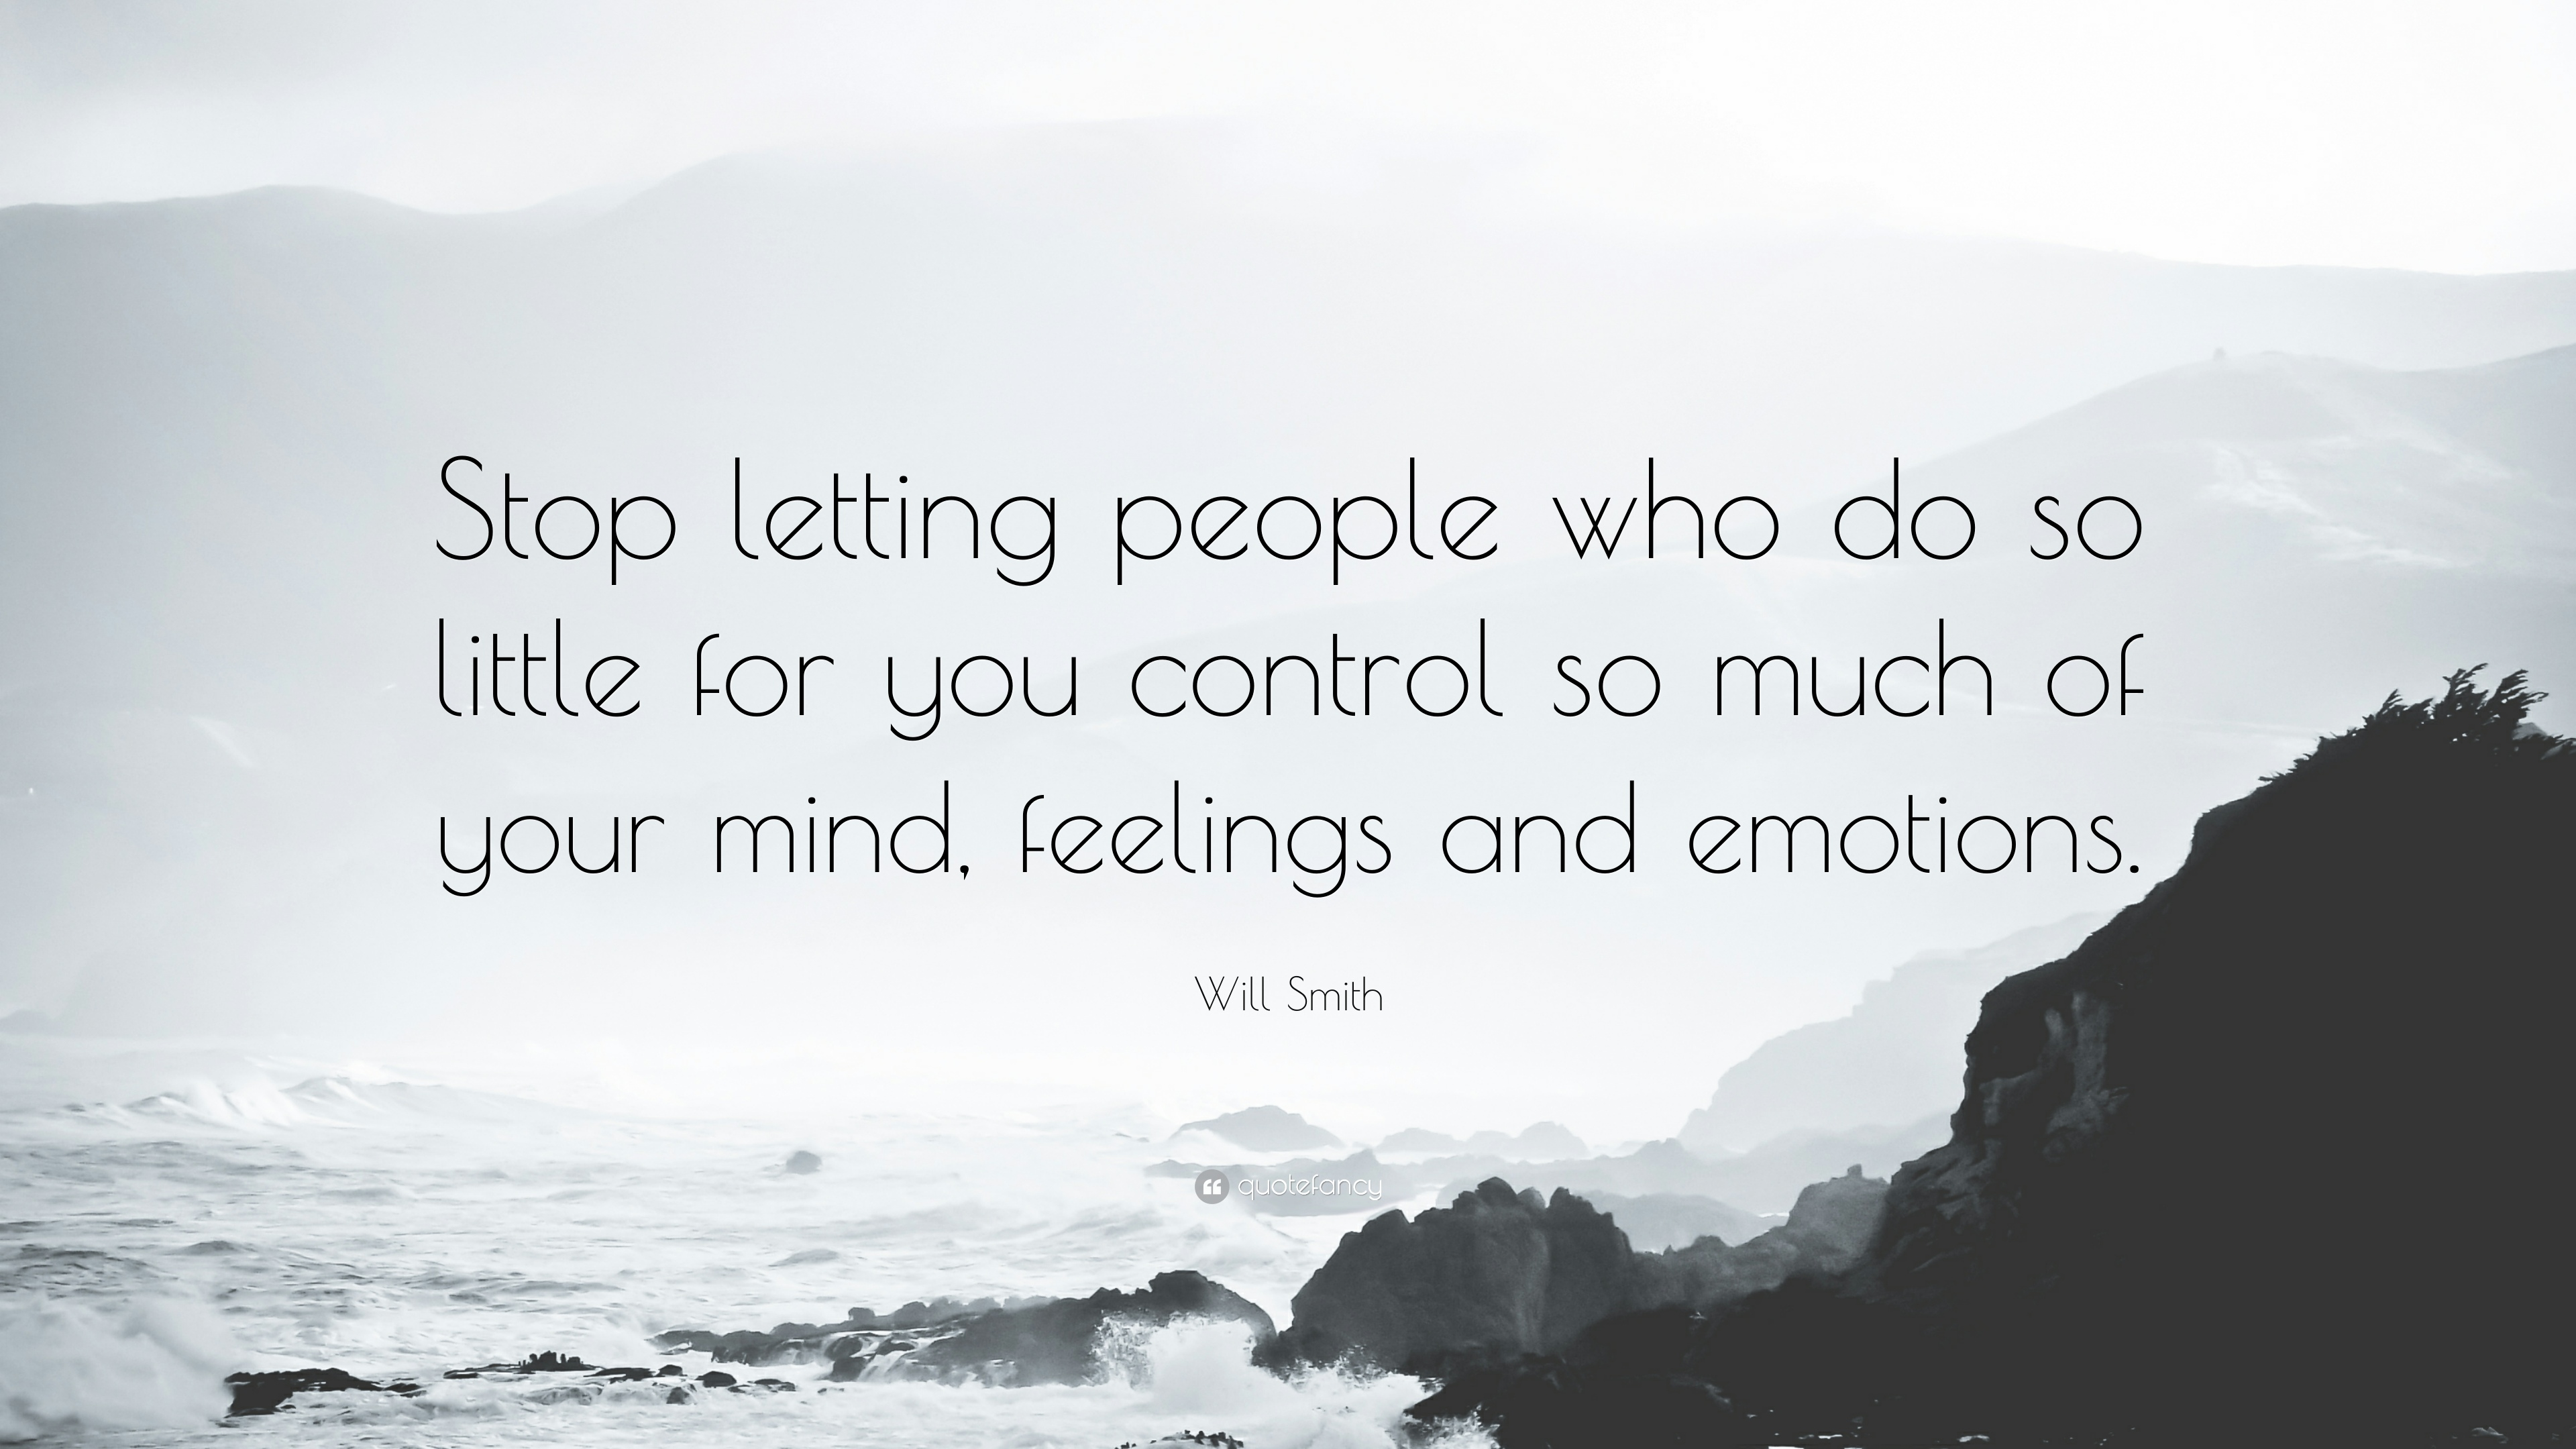 Kết quả hình ảnh cho Stop letting people who do so little for you control so much of your mind, feelings & emotions.